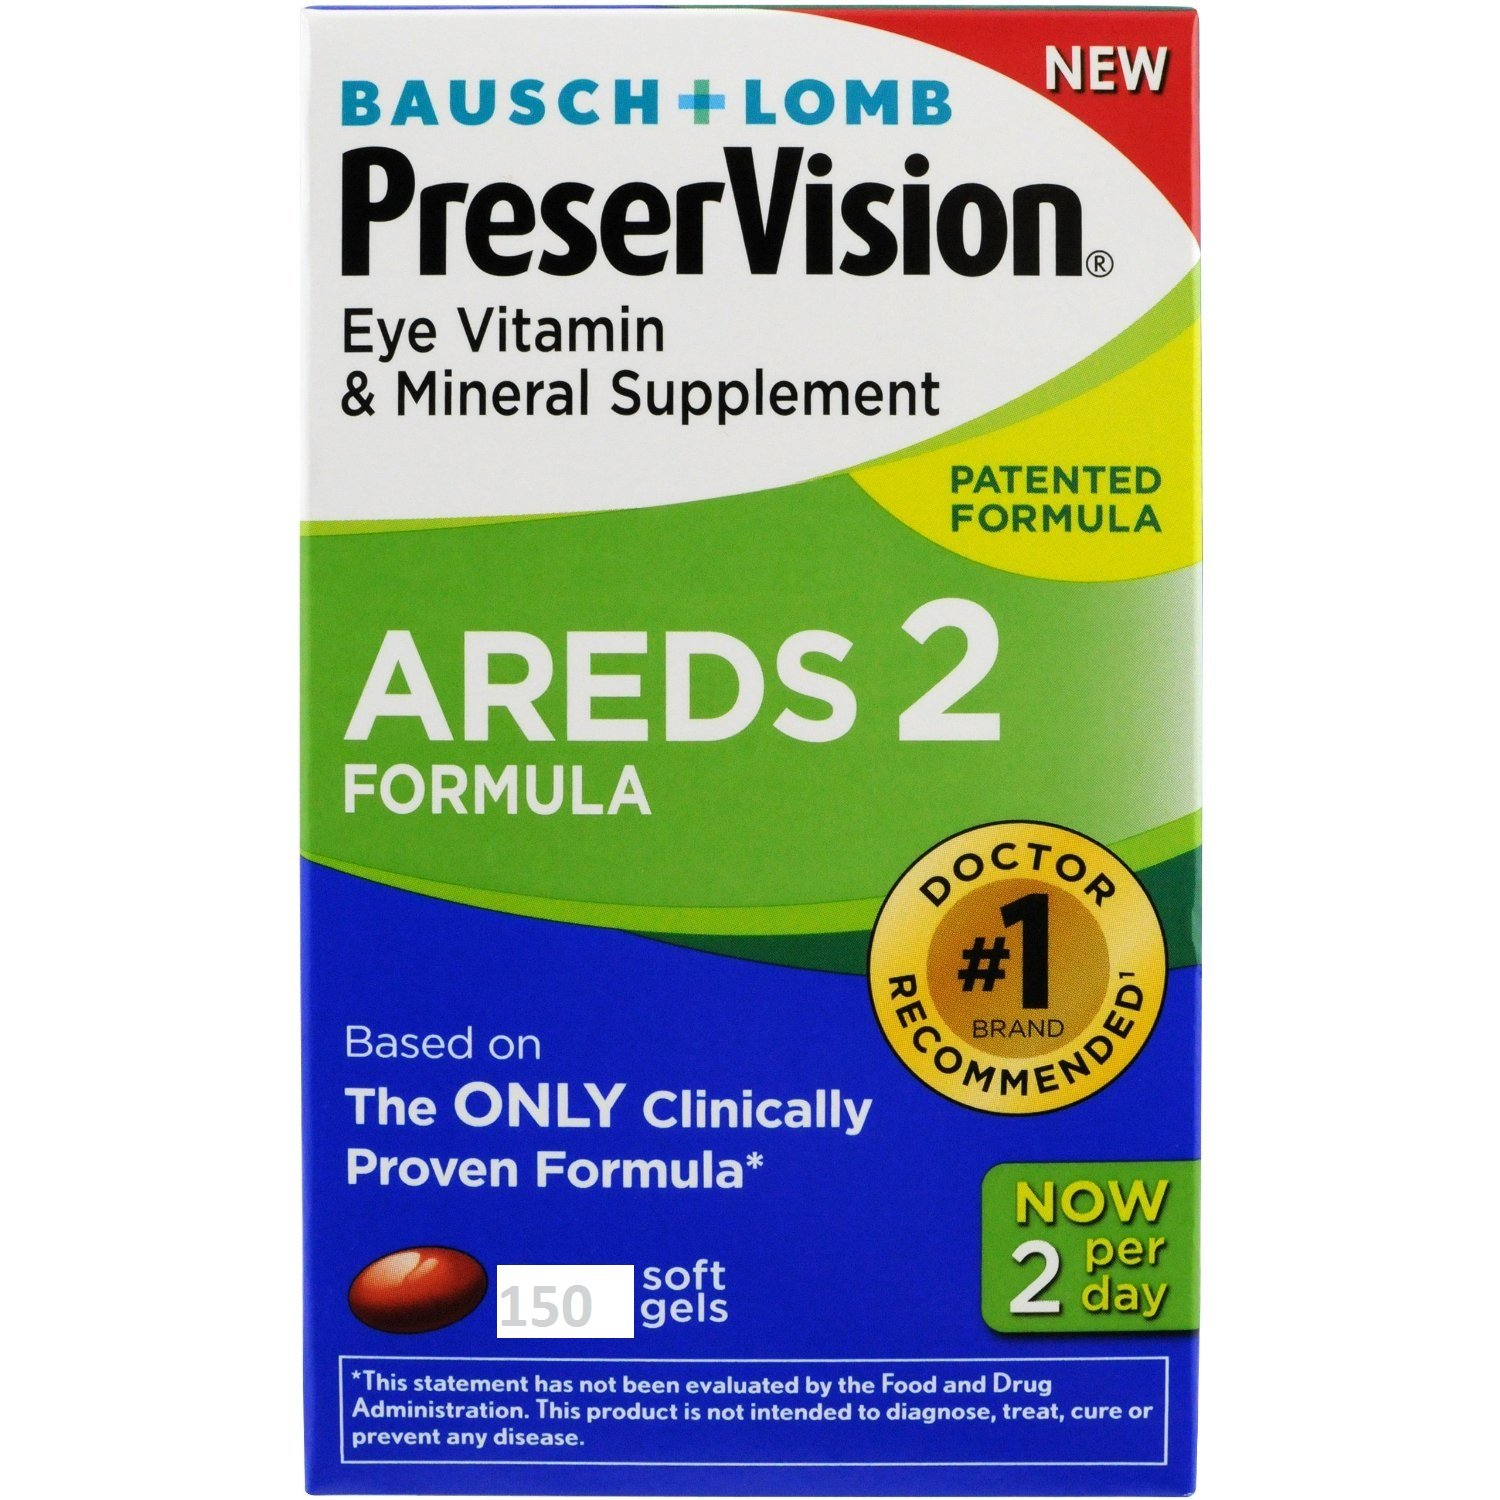 Bausch and Lomb PreserVision AREDS 2 Formula Eye Vitamin and Mineral Supplement – 150 Softgels